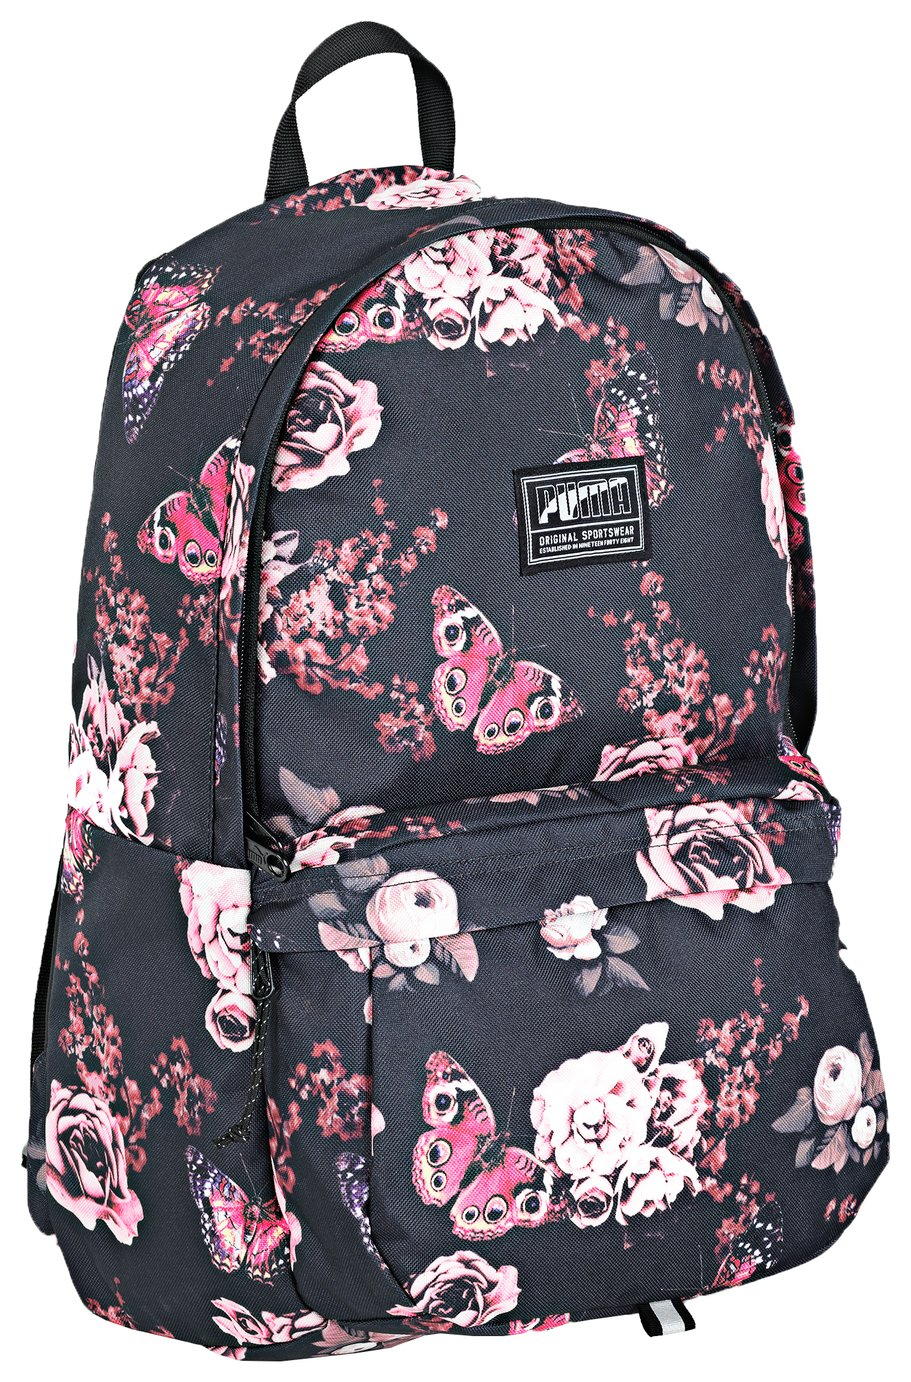 Puma Backpack - Floral lowest price